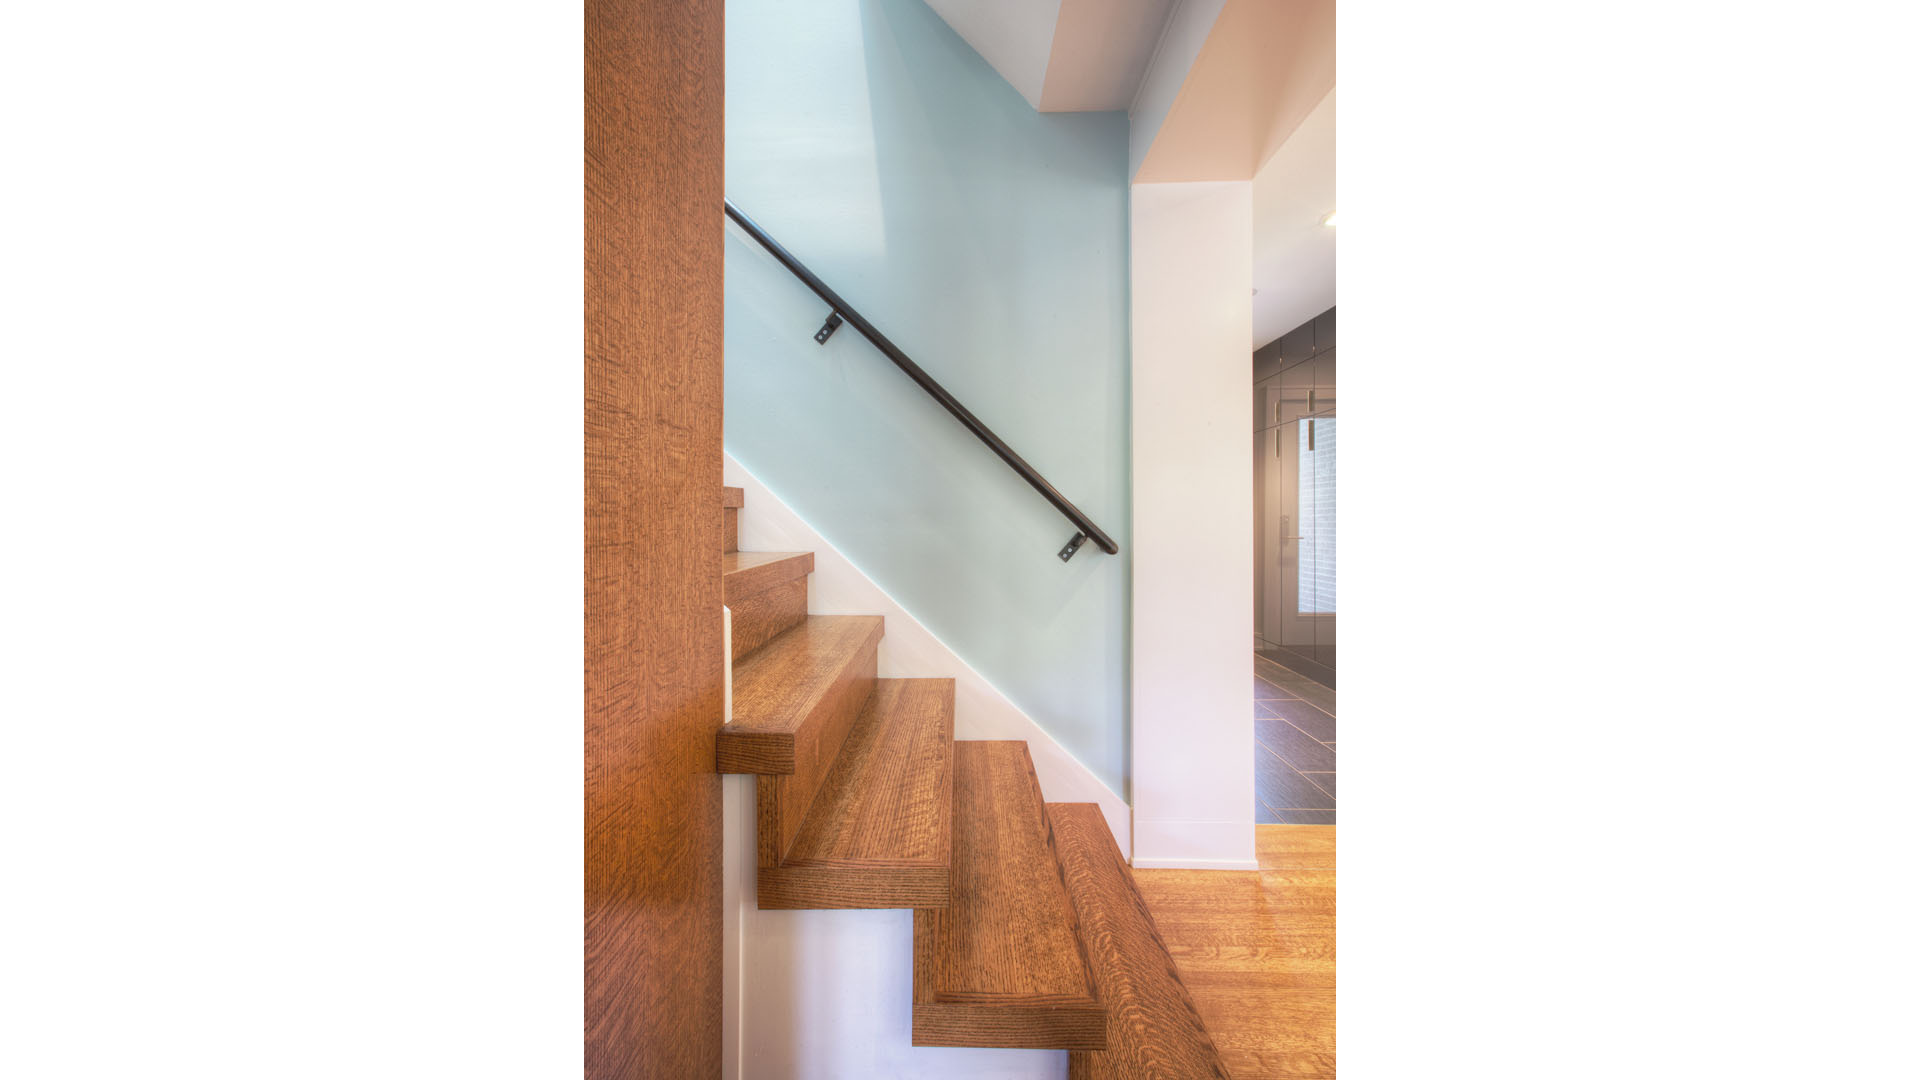 Classic Butler Tarkington Modern Tudor Renovation, Stair Detail Oak Steel Handrail, HAUS Architecture, WERK Building Modern, Christopher Short, Indianapolis Architect